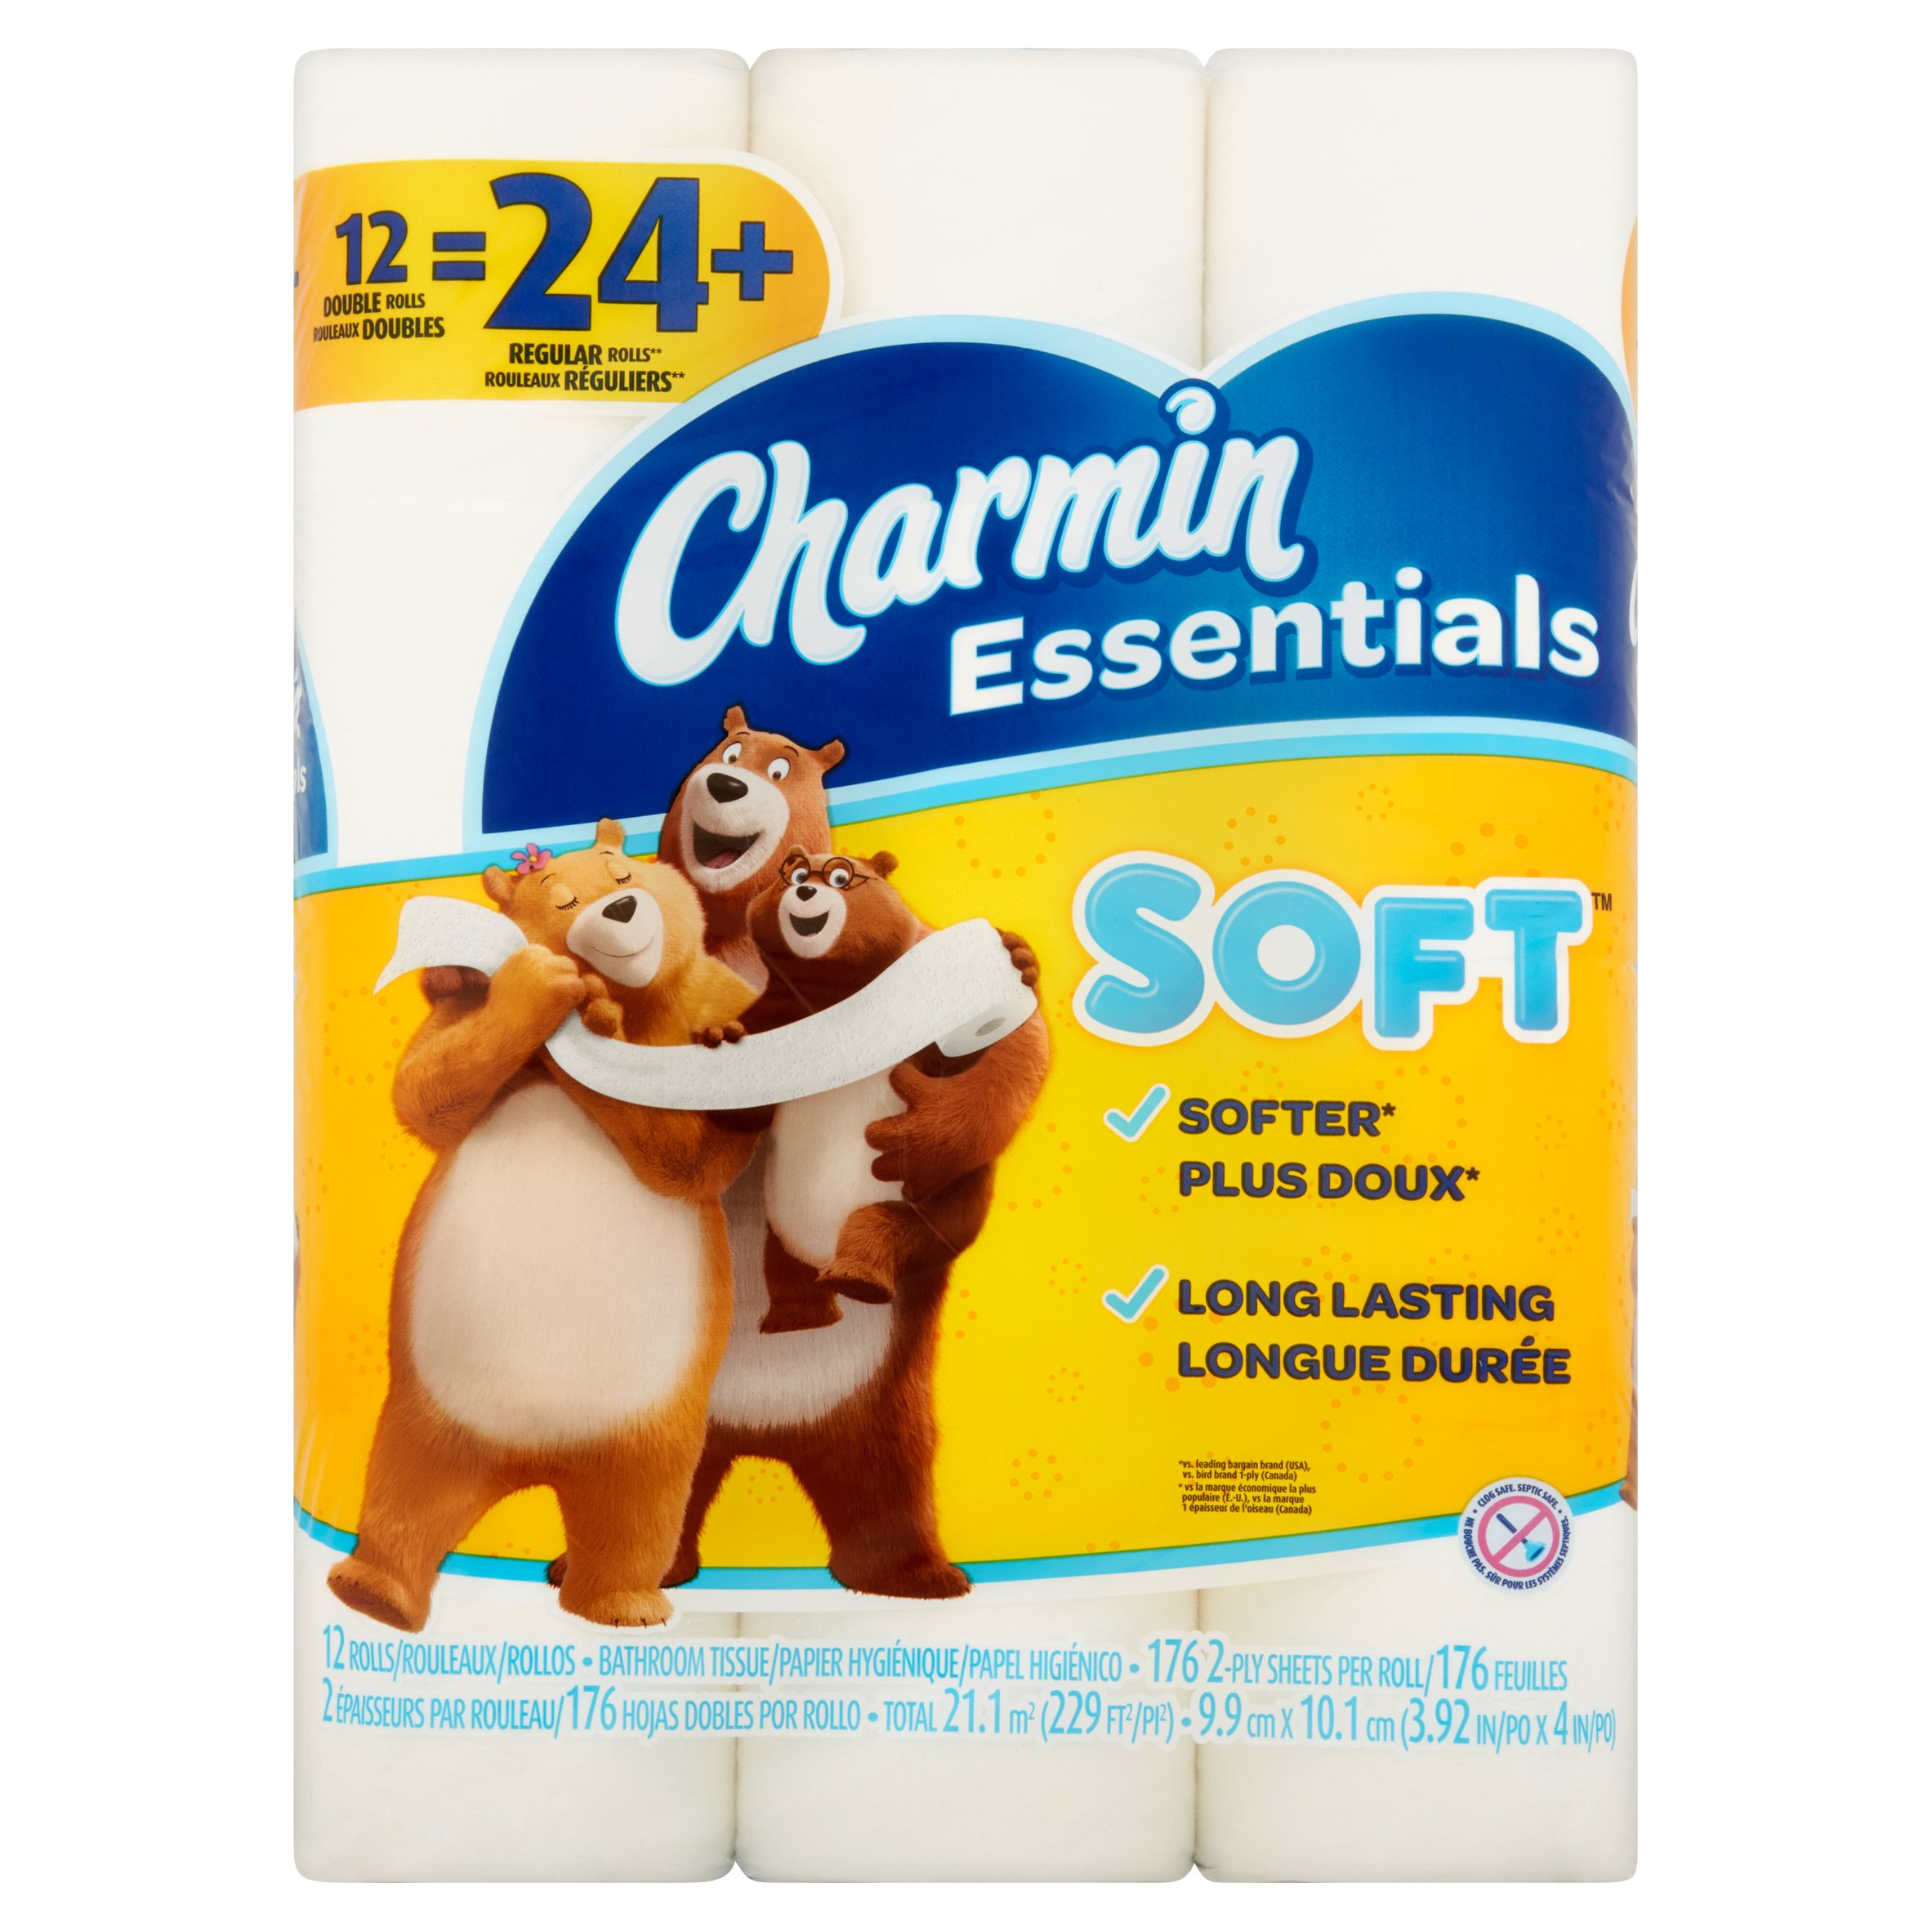 Charmin Essentials Soft Toilet Paper, 12 double rolls by 42971:Procter And Gamble